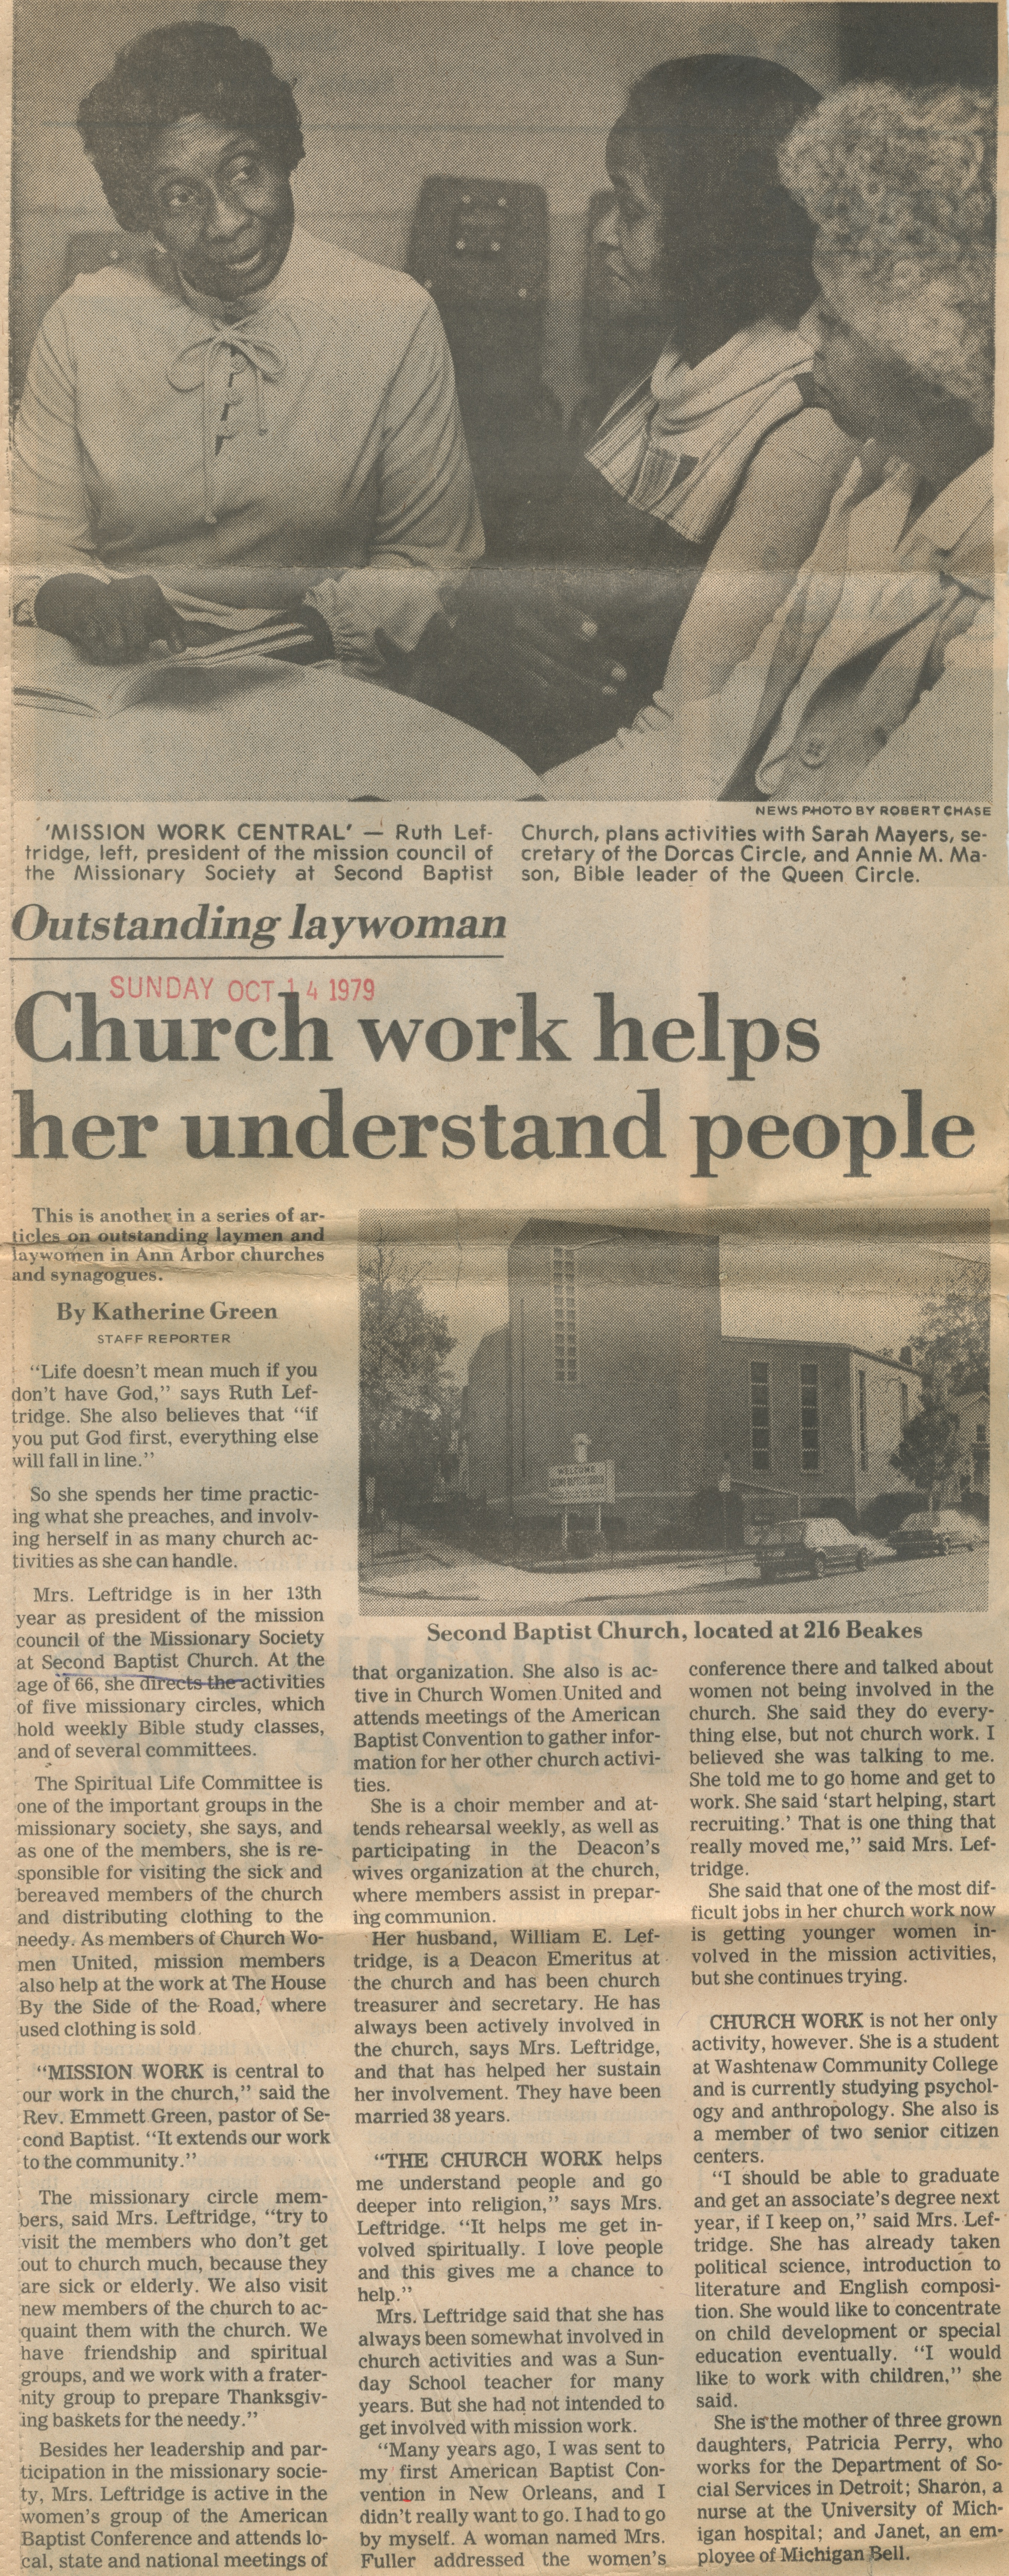 Church Work Helps Her Understand People ~ Outstanding Laywoman image